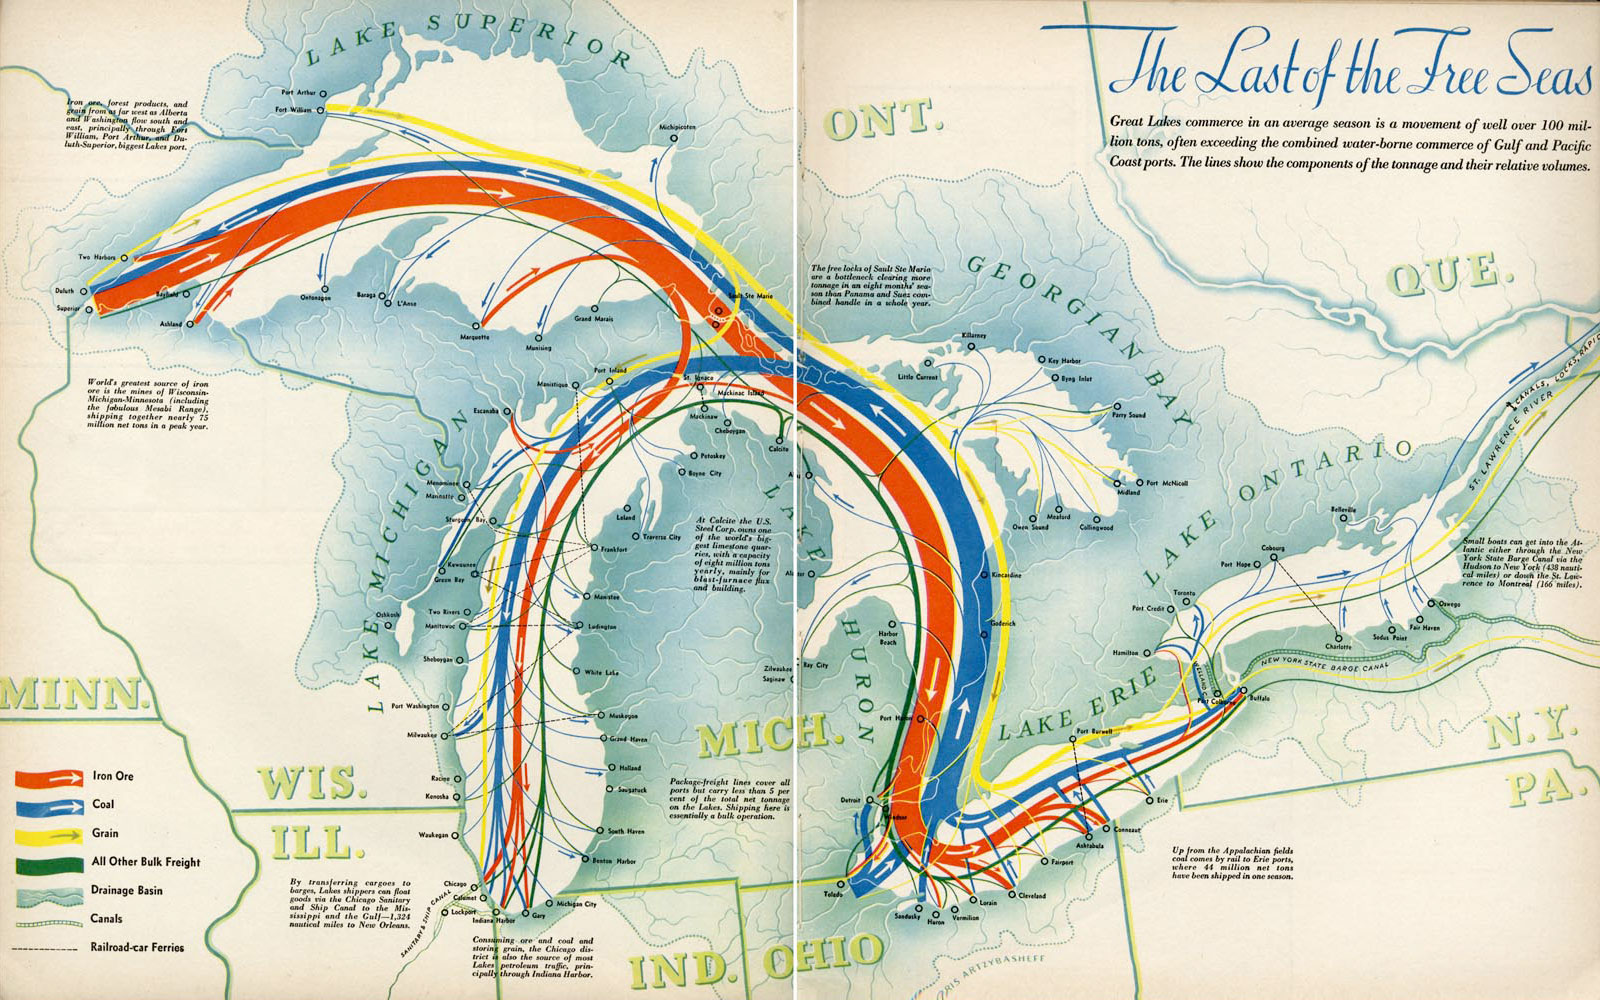 A 1940 map of commodities trade in the Great Lakes